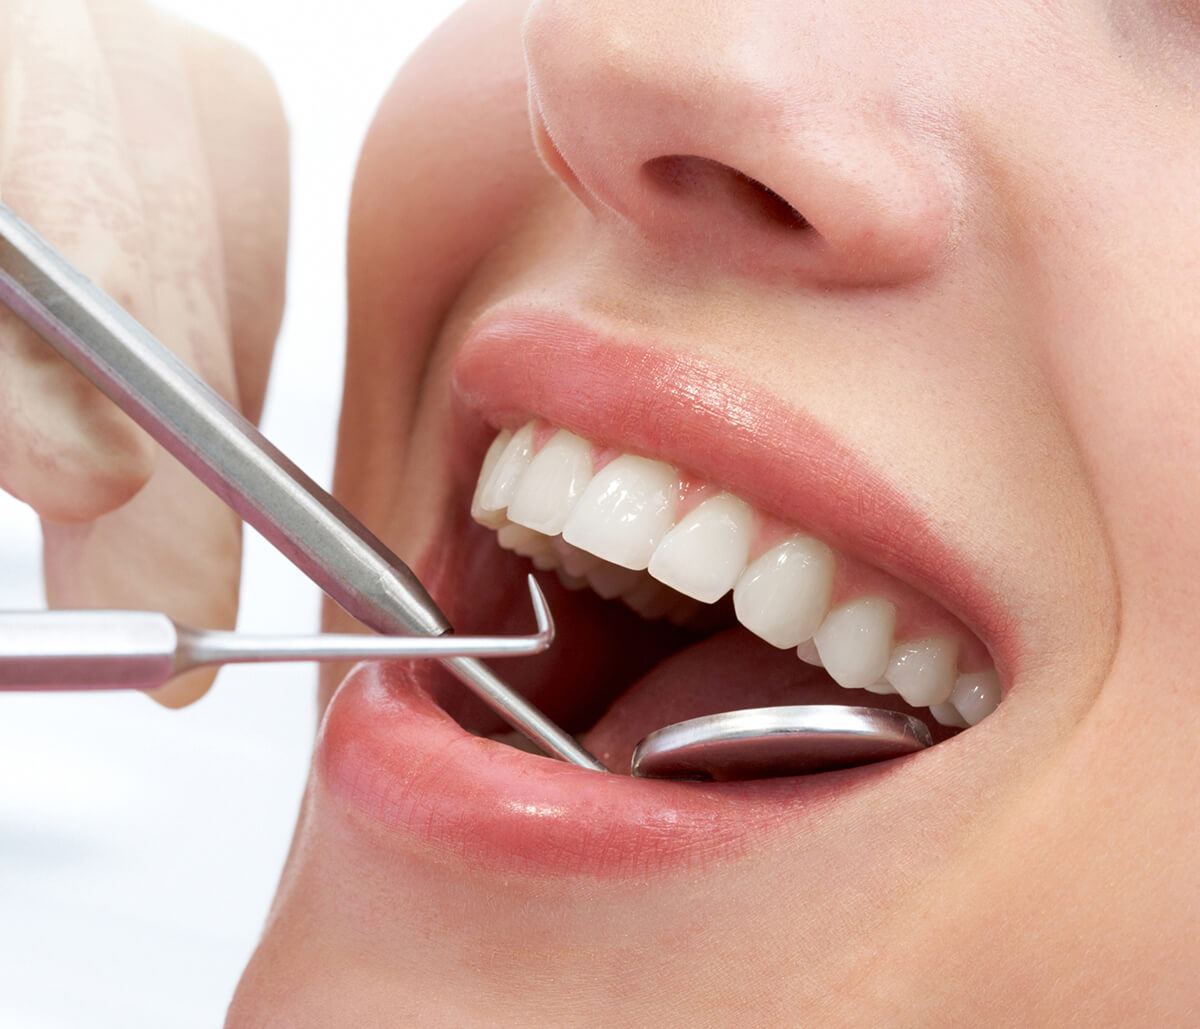 Virtue Dental Care Yadkinville NC, How ozone therapy for teeth can be used to prevent and treat disease